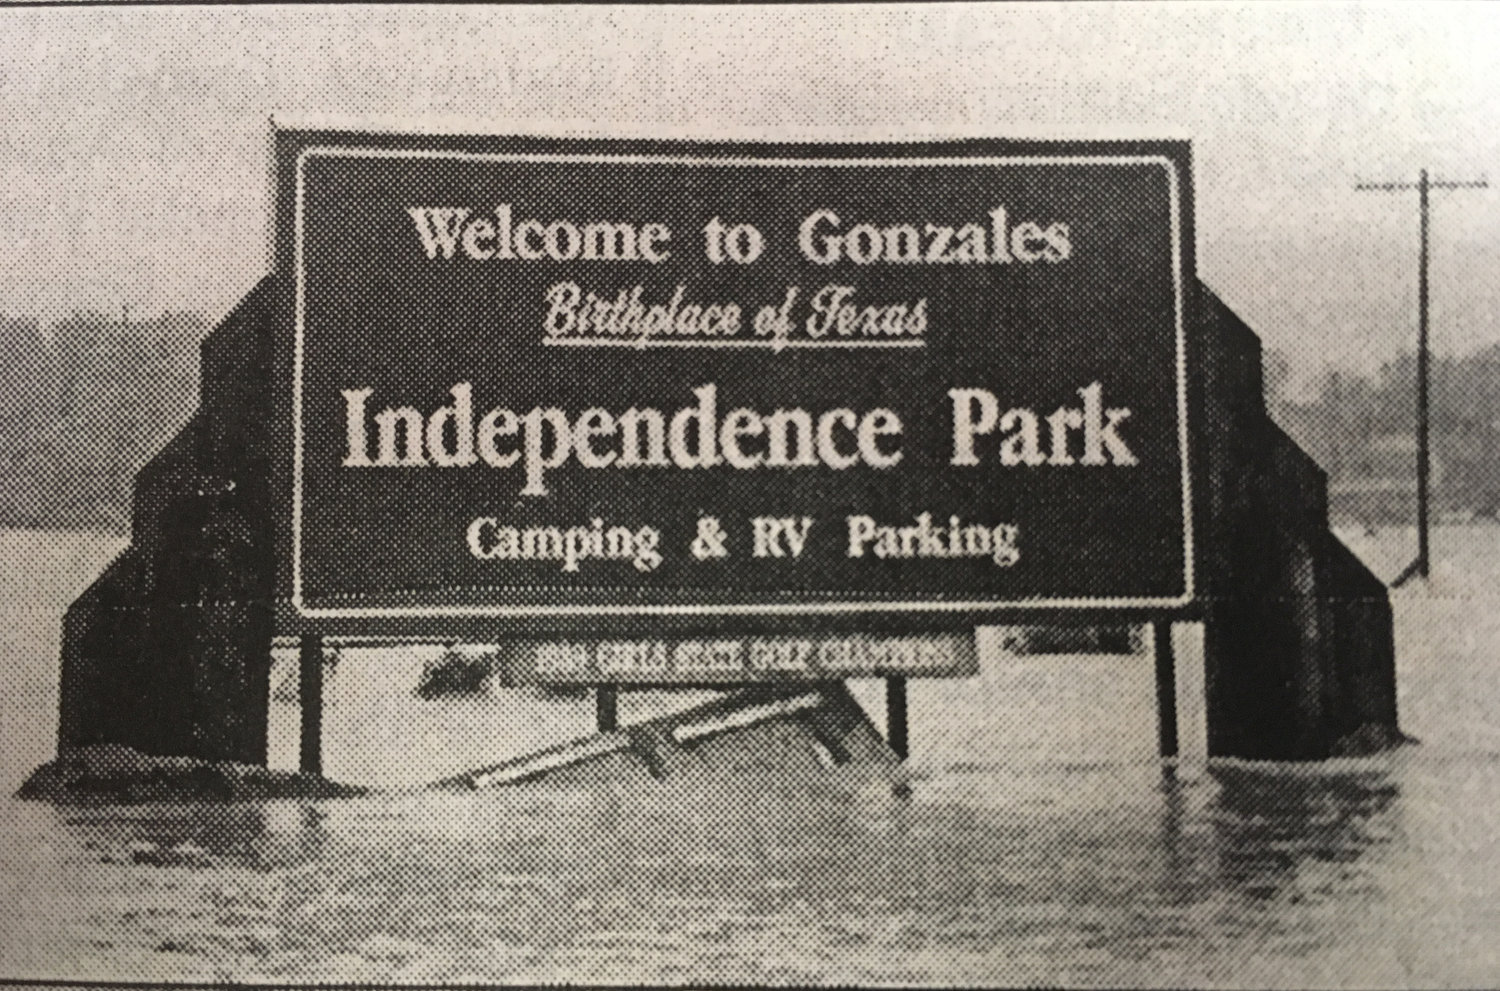 Scenes from around Gonzales after the record breaking flood experienced here on Oct. 18, 1998.